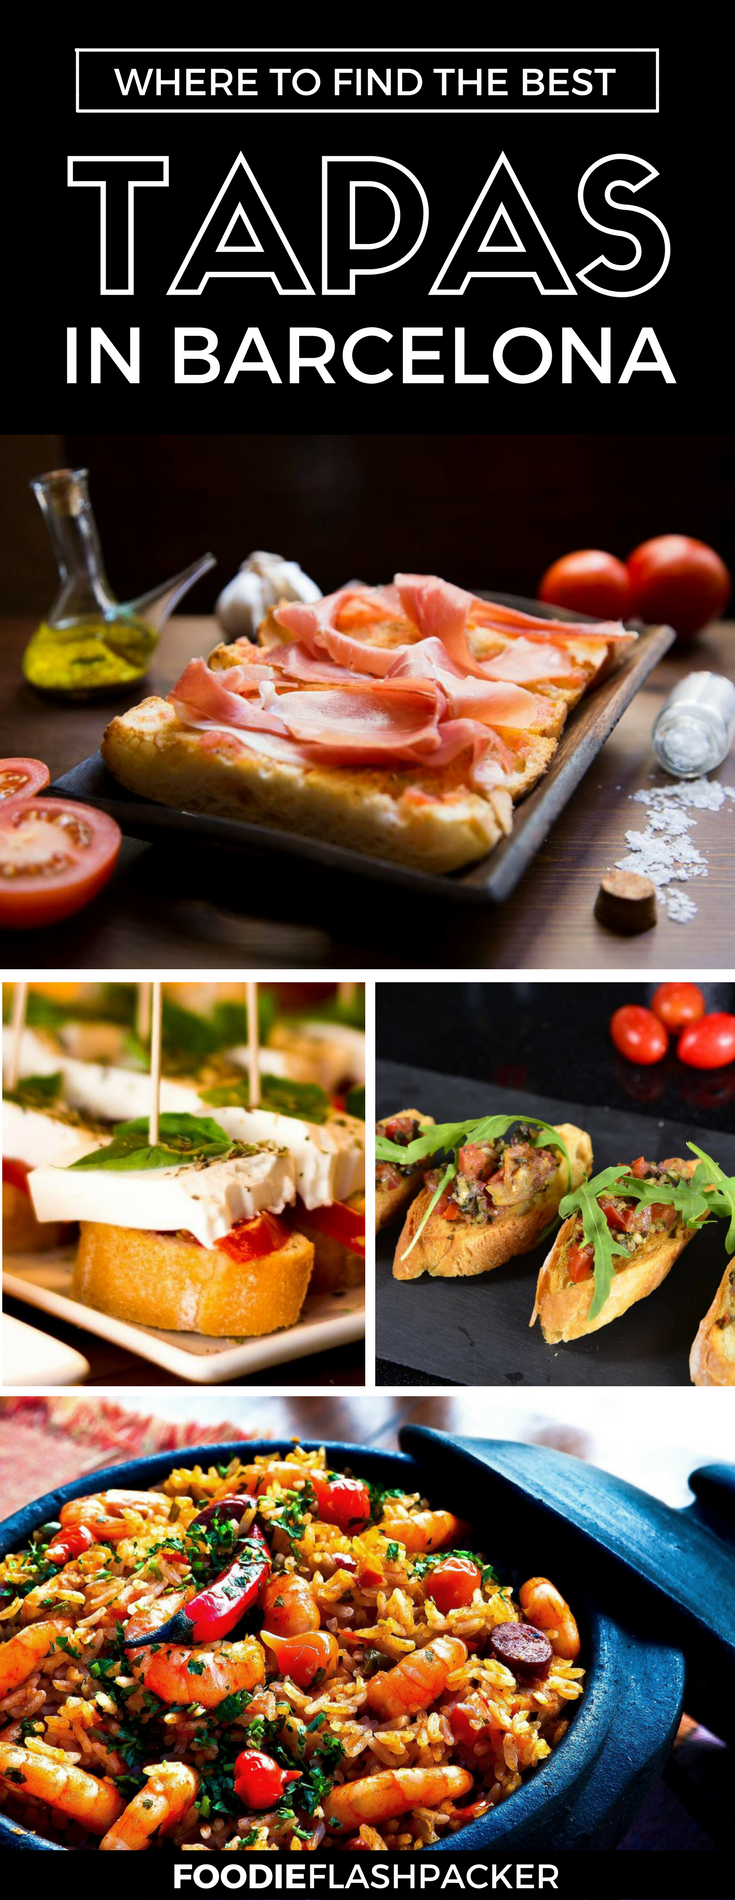 Where to Find the Best Tapas in Barcelona, Spain